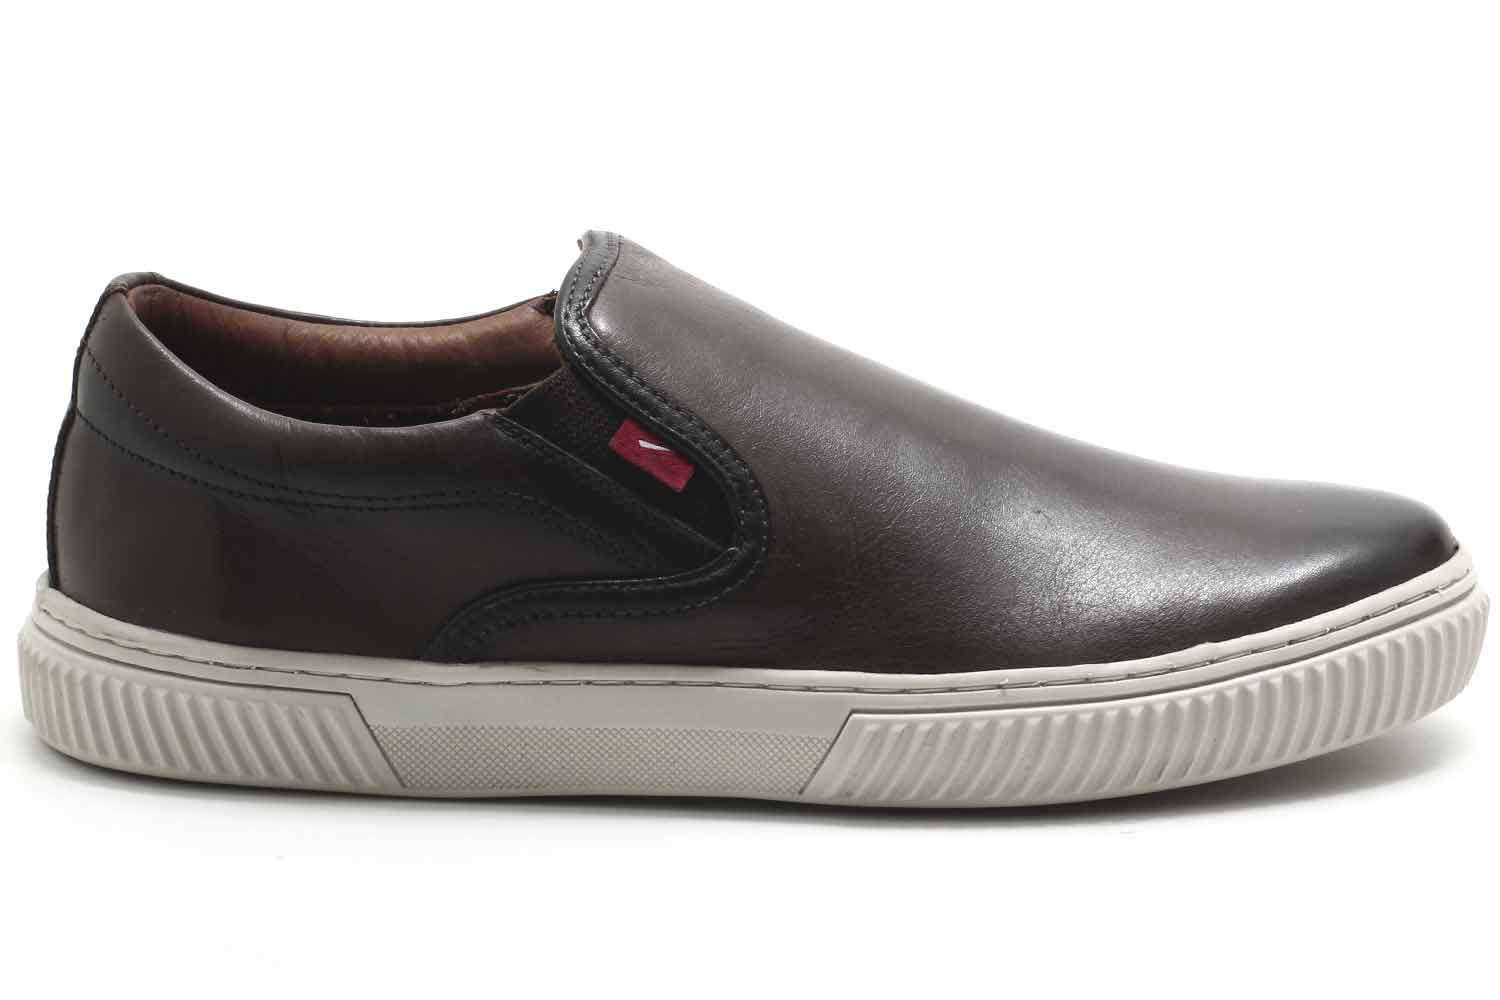 Slip On Ferracini Colors Couro Iate Masculino 7537-564